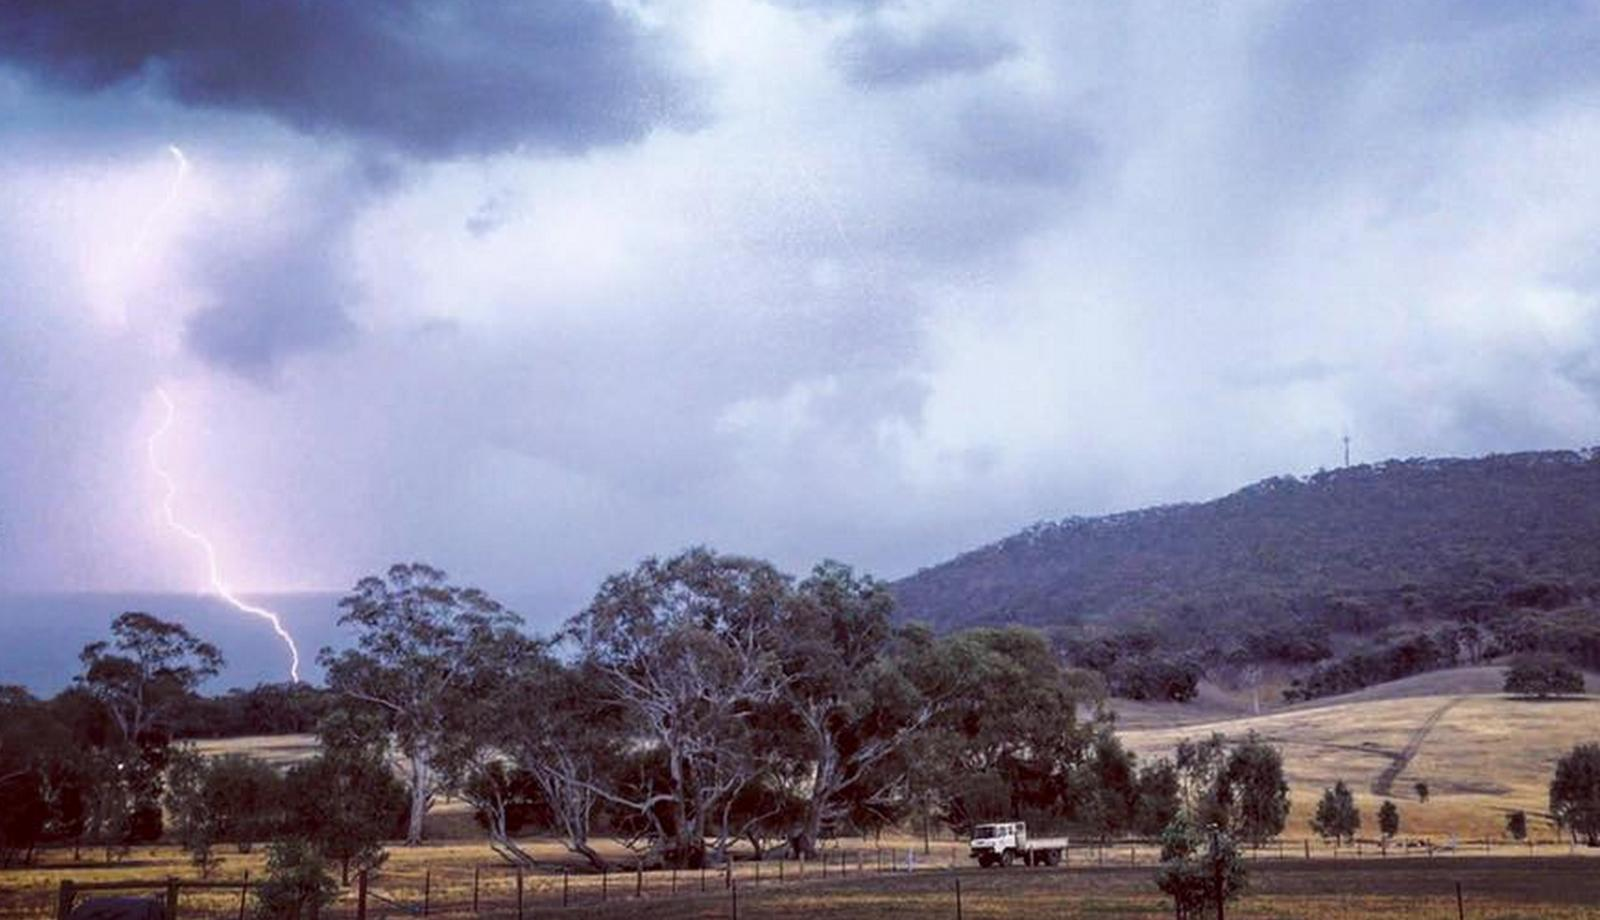 More thunderstorm activity, but falls patchy